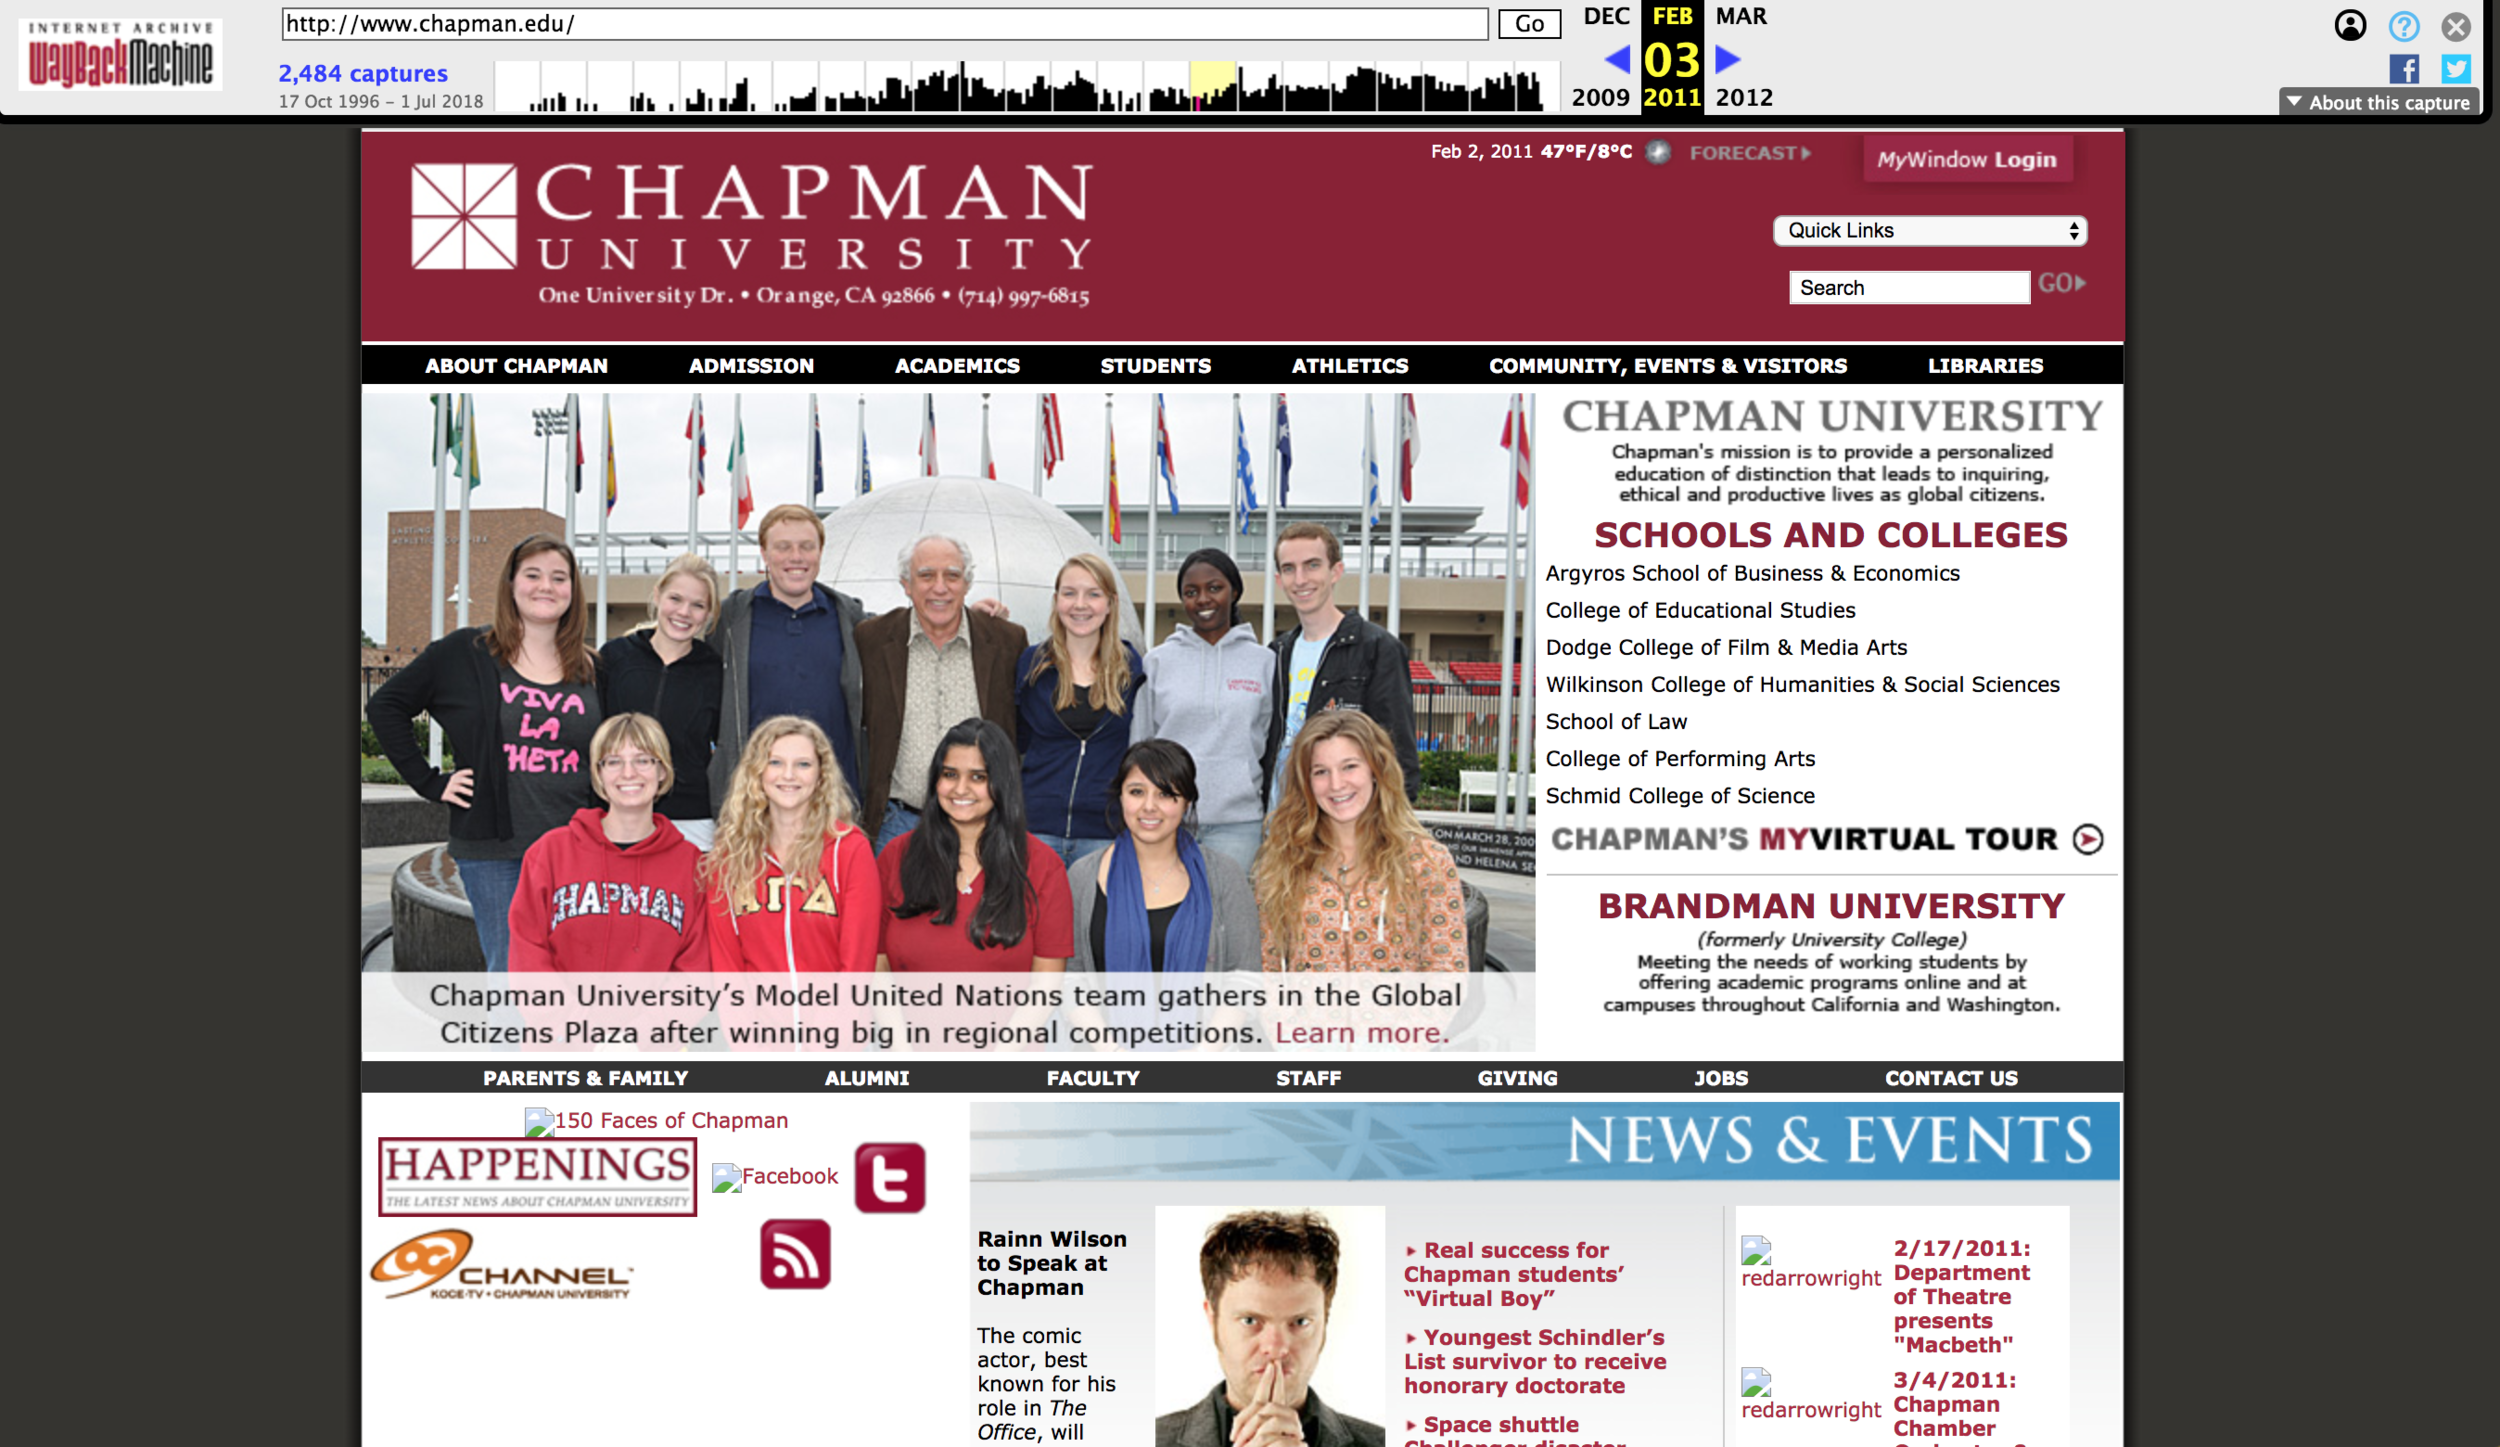 Chapman University's Website in 2011.